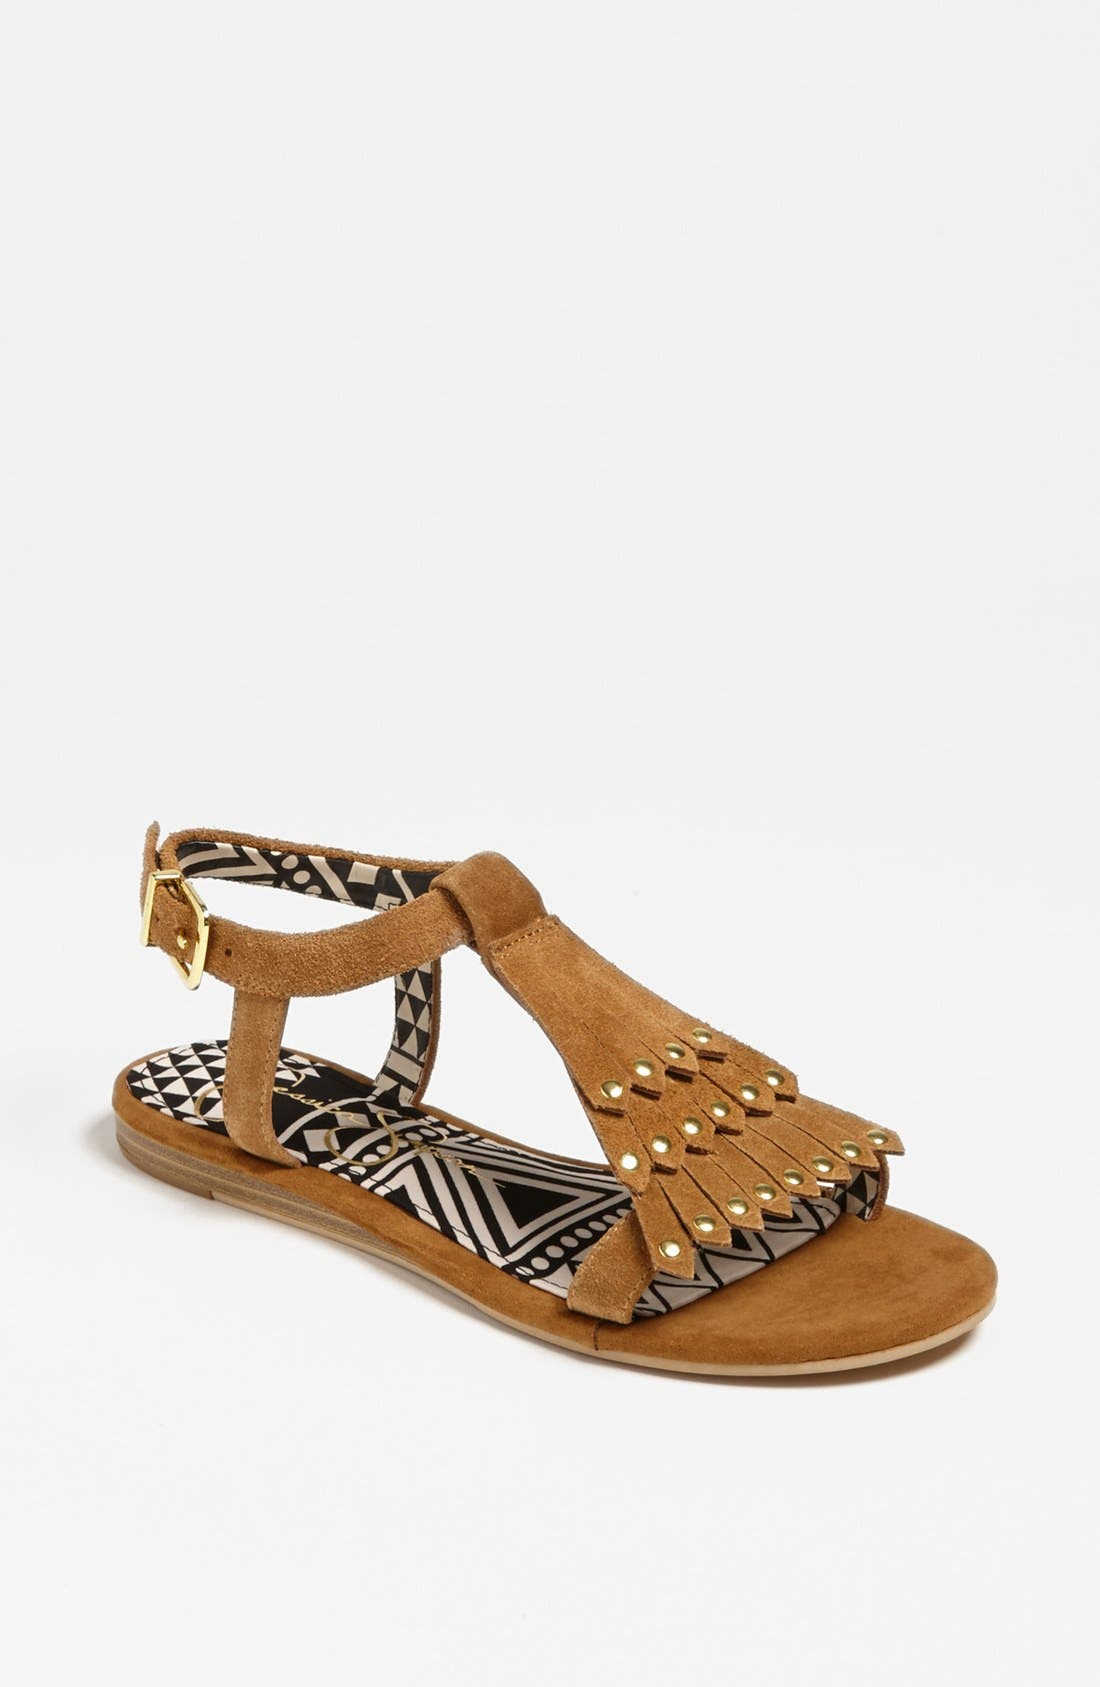 Alternate Image 1 Selected - Jessica Simpson 'Dexter' Sandal